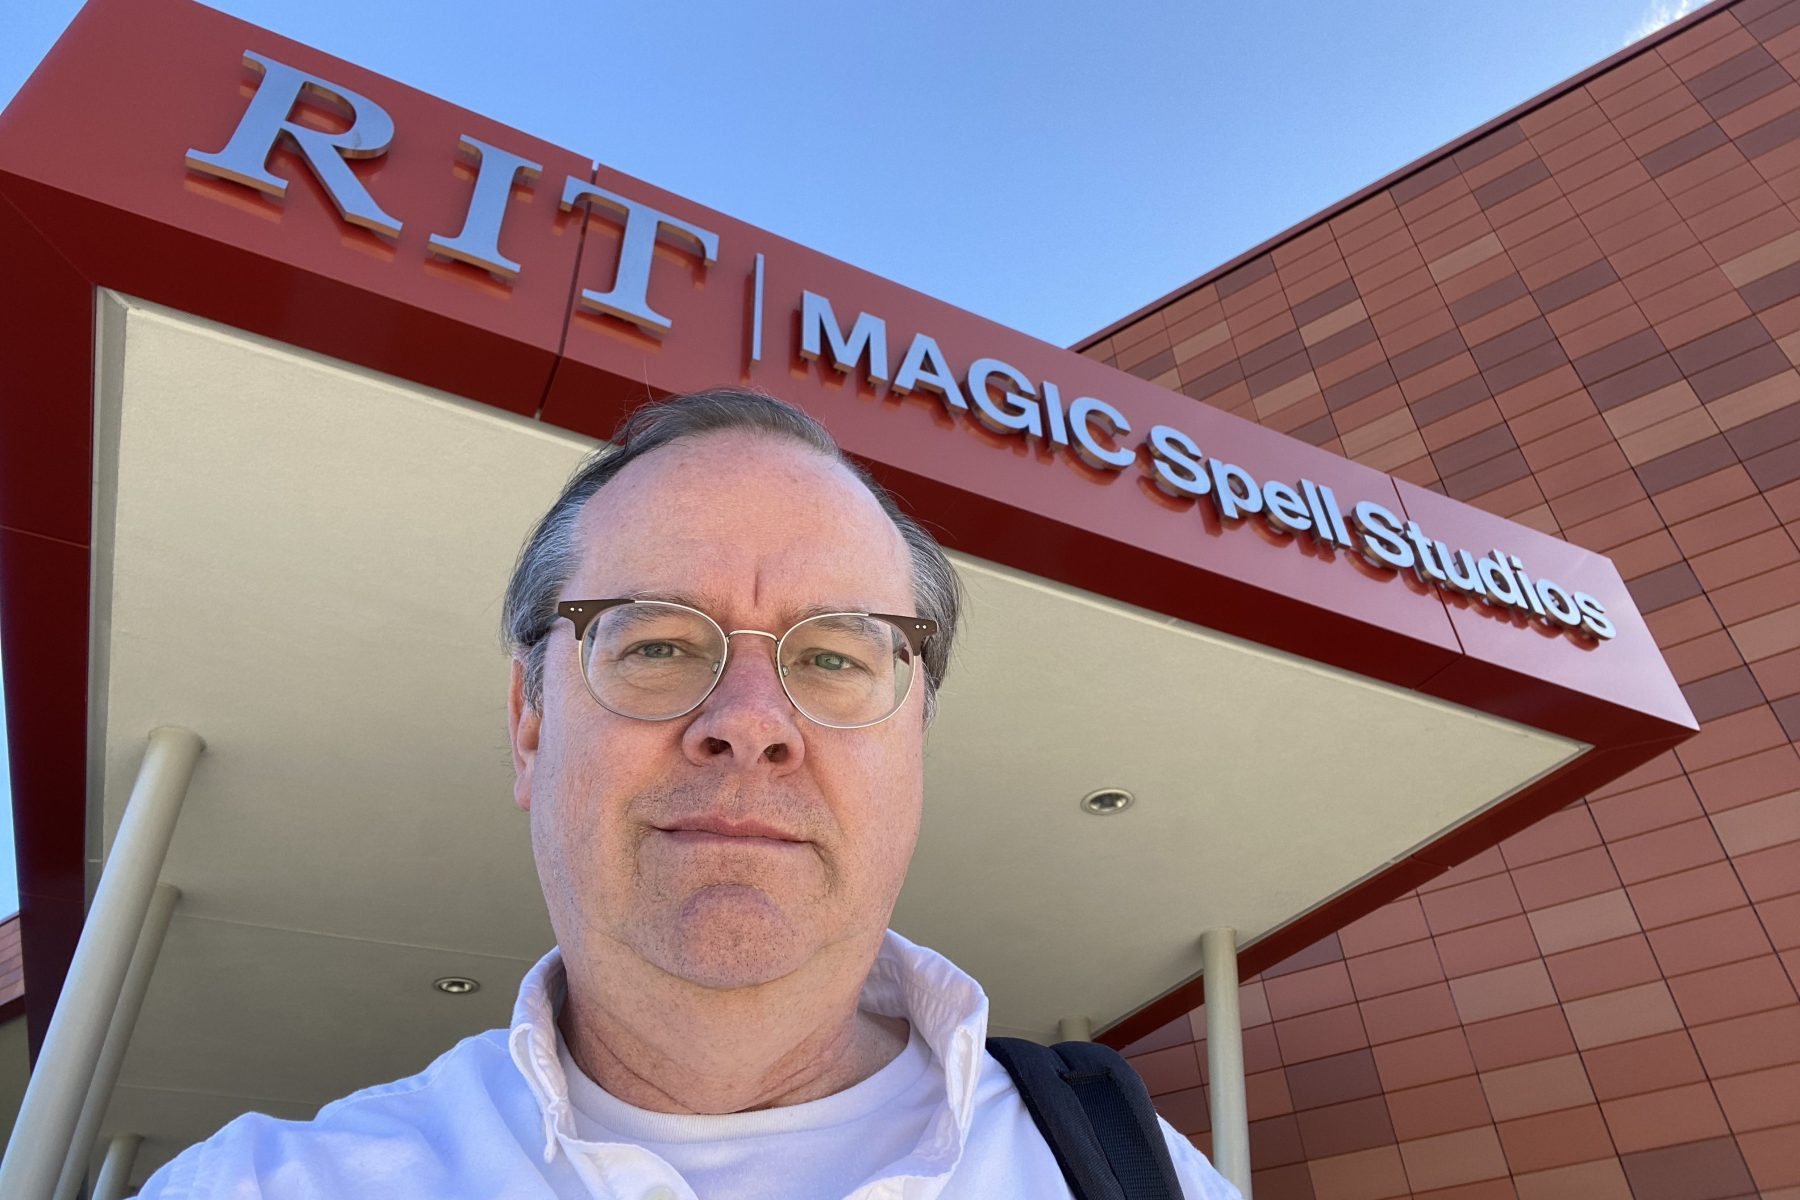 Me in front of the RIT Magic Center